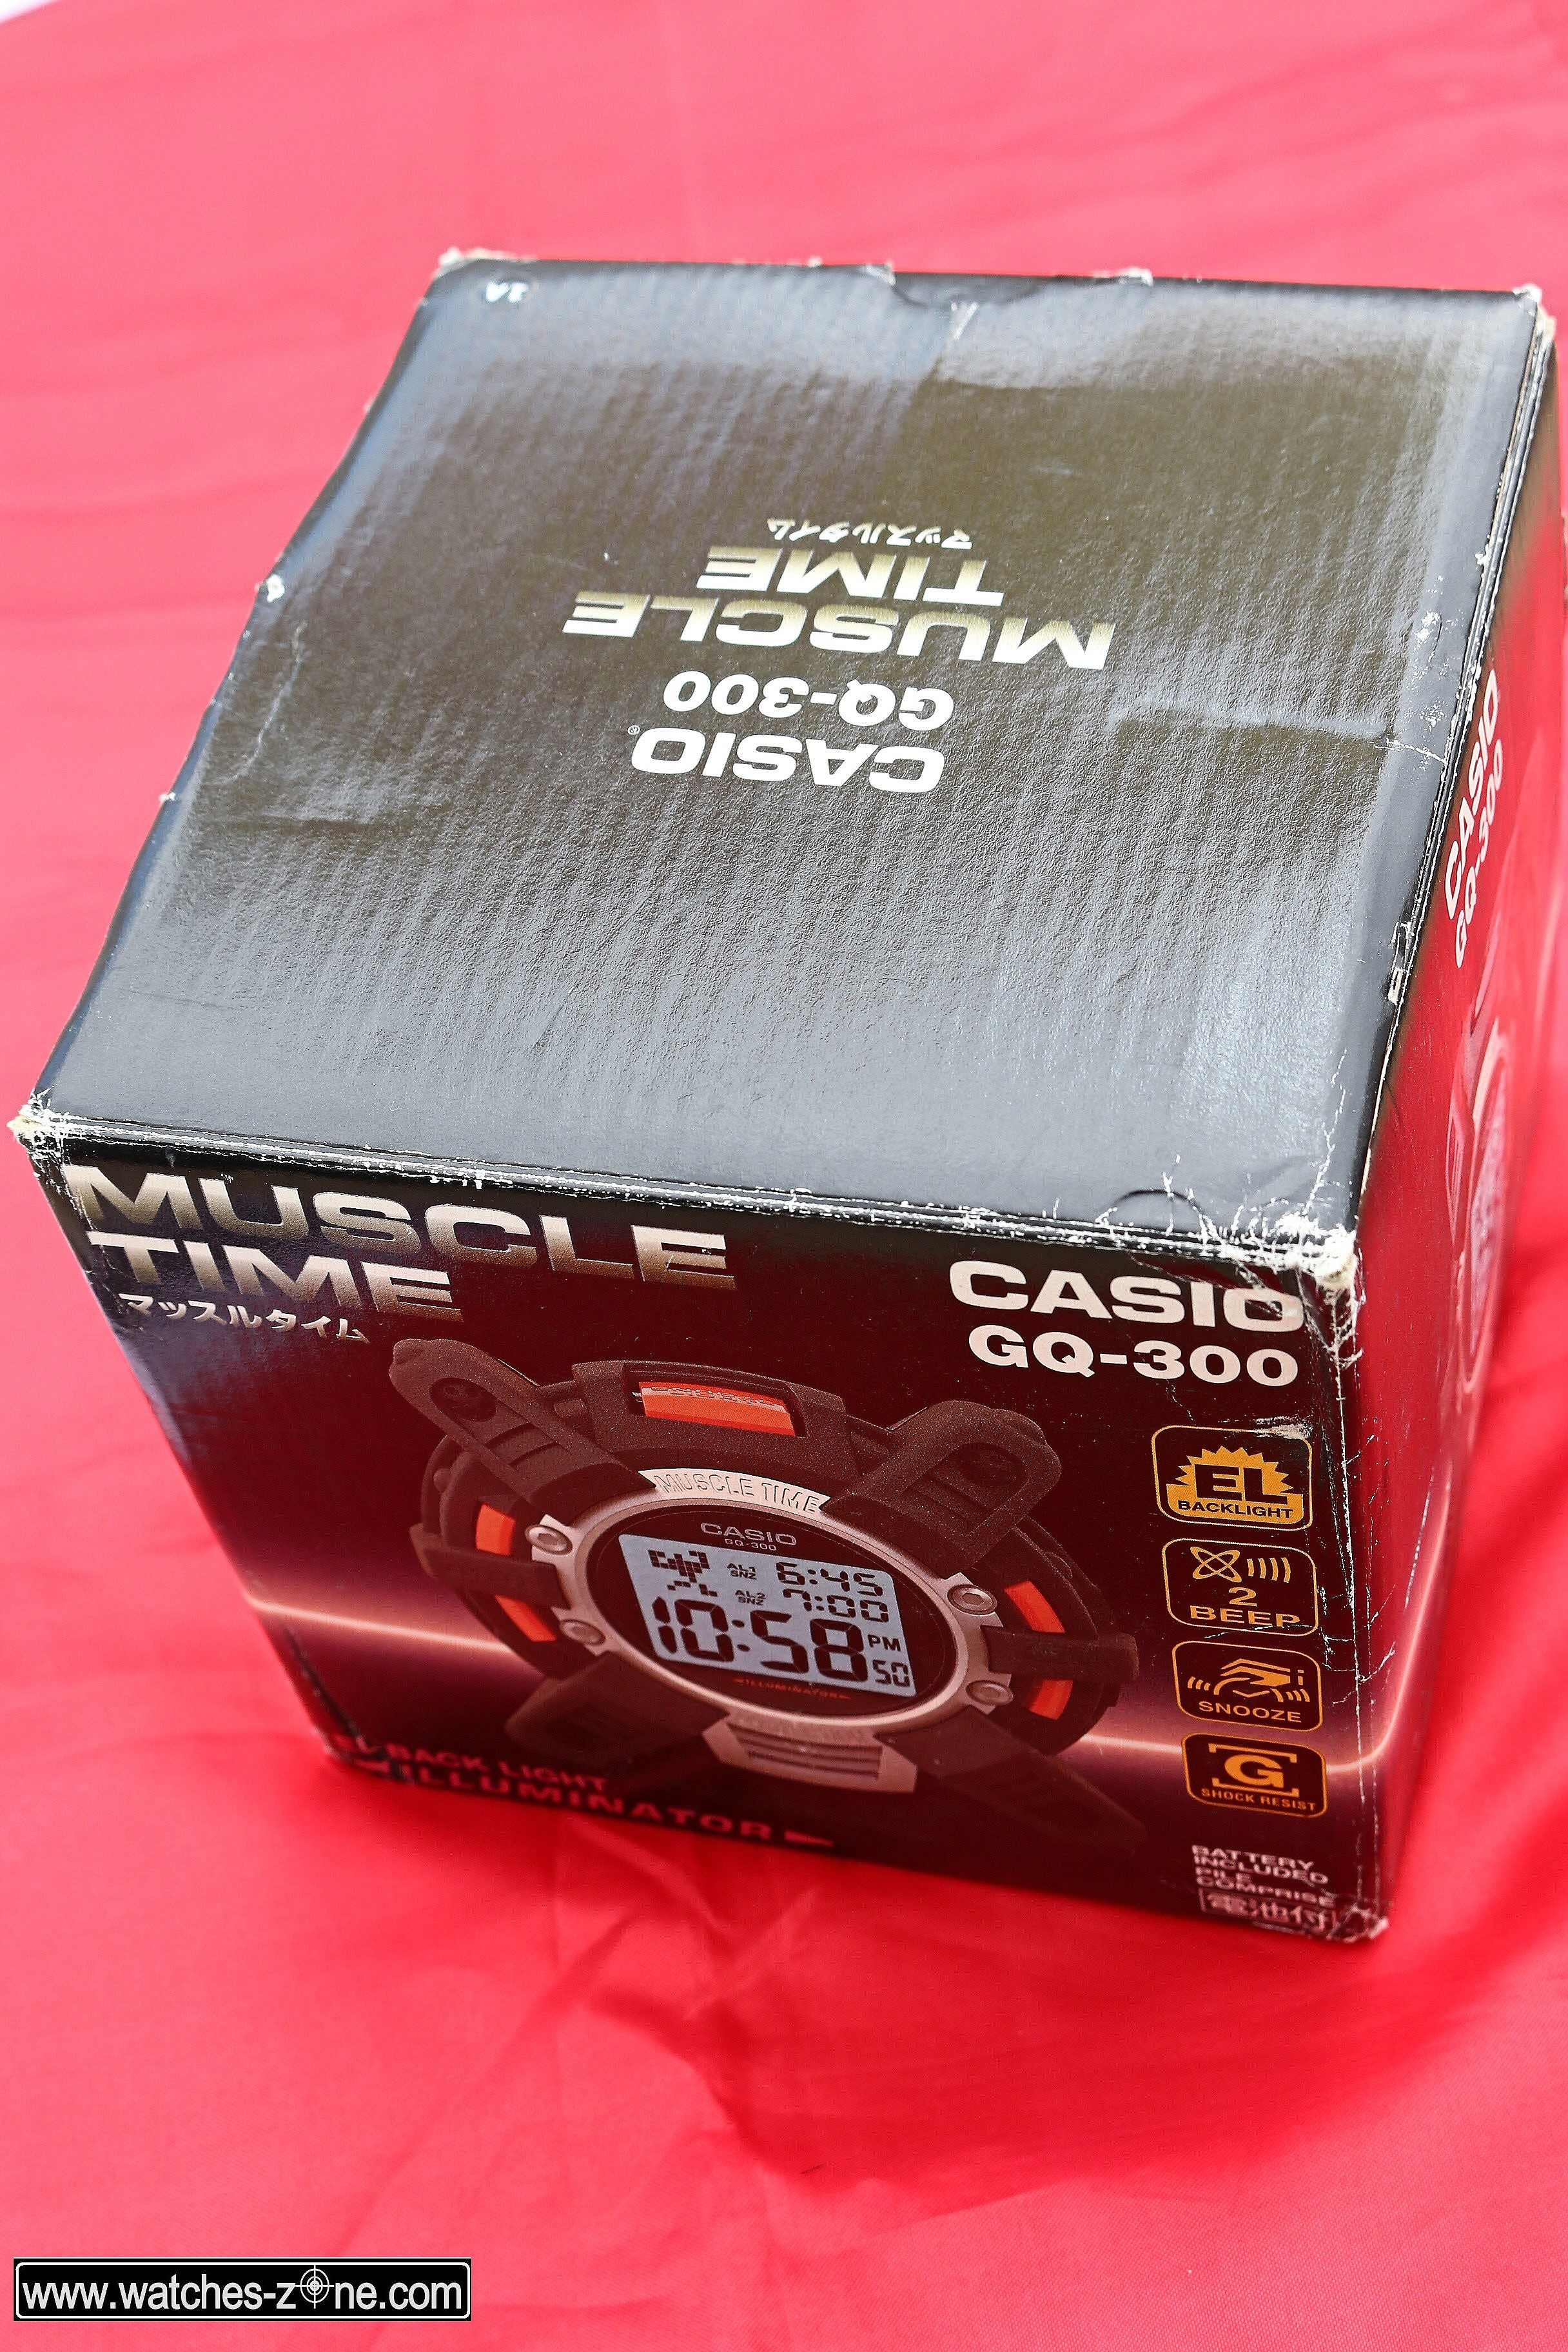 CASIO GQ-300 MUSCLE TIME: ¡¡¡ El Concepto !!! 9bbb513270607093a58bf602421e9550o